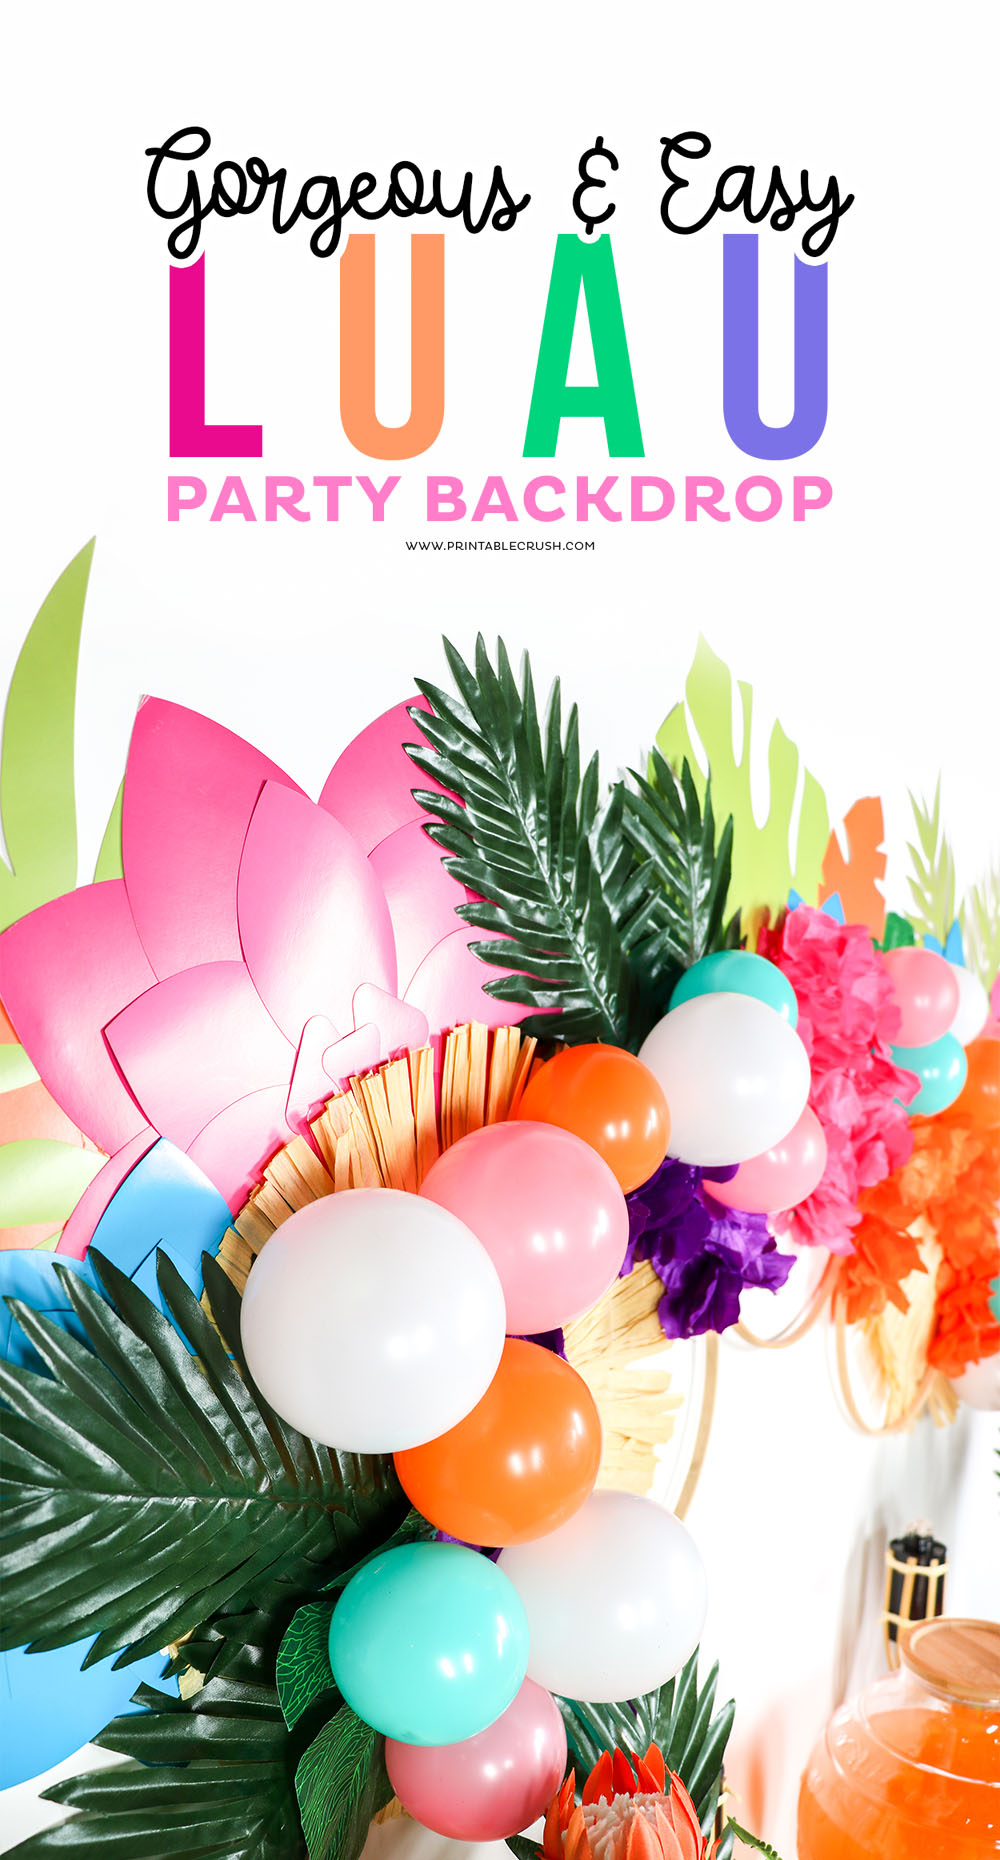 Easily make this damage-free Luau Party Backdrop for a great summer party!